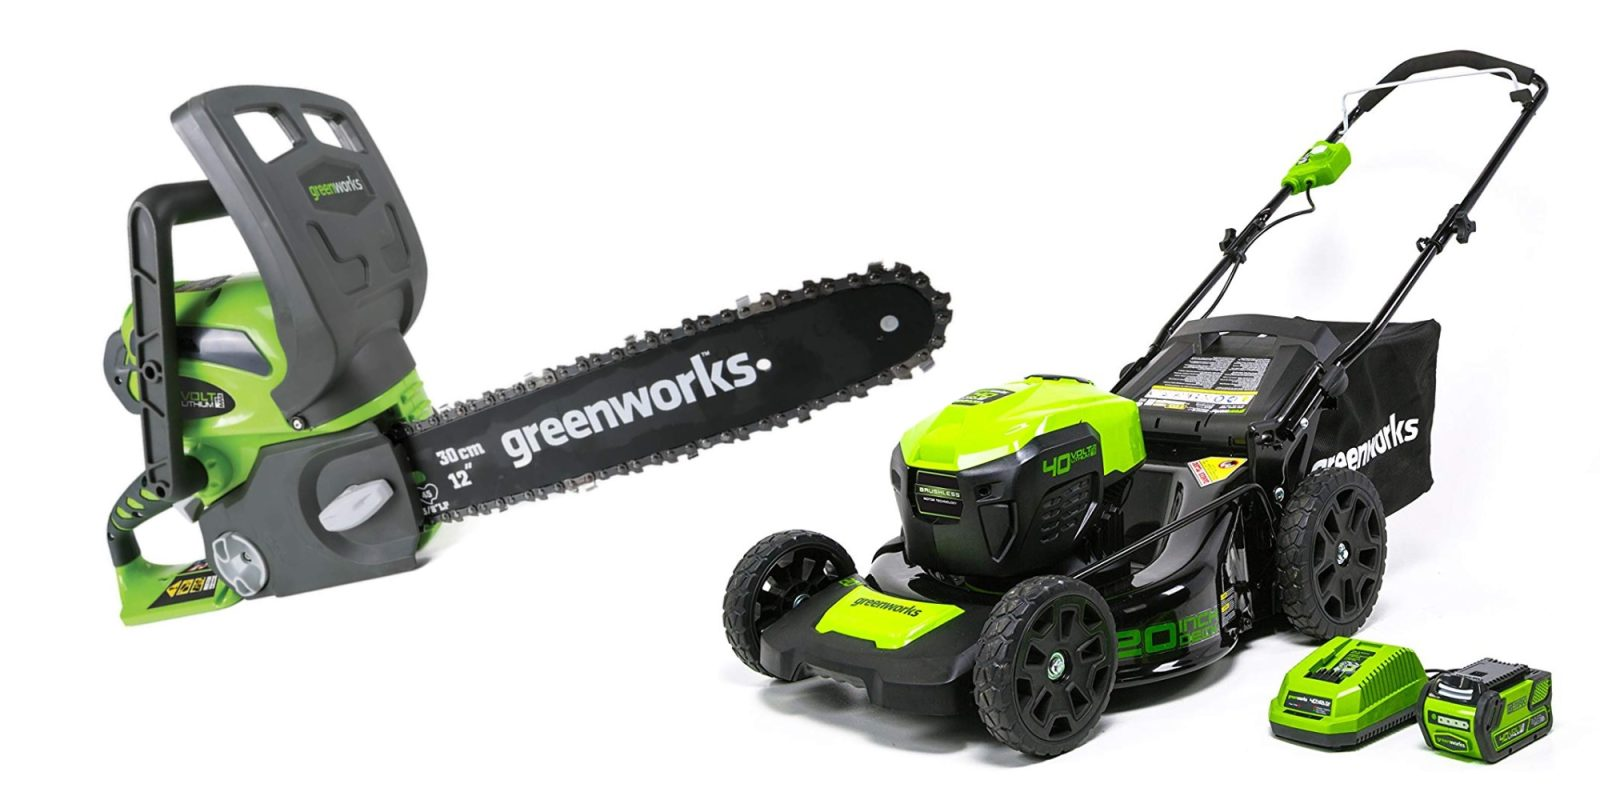 Today's Gold Box is packed with GreenWorks mowers, chainsaws, more from $22.50